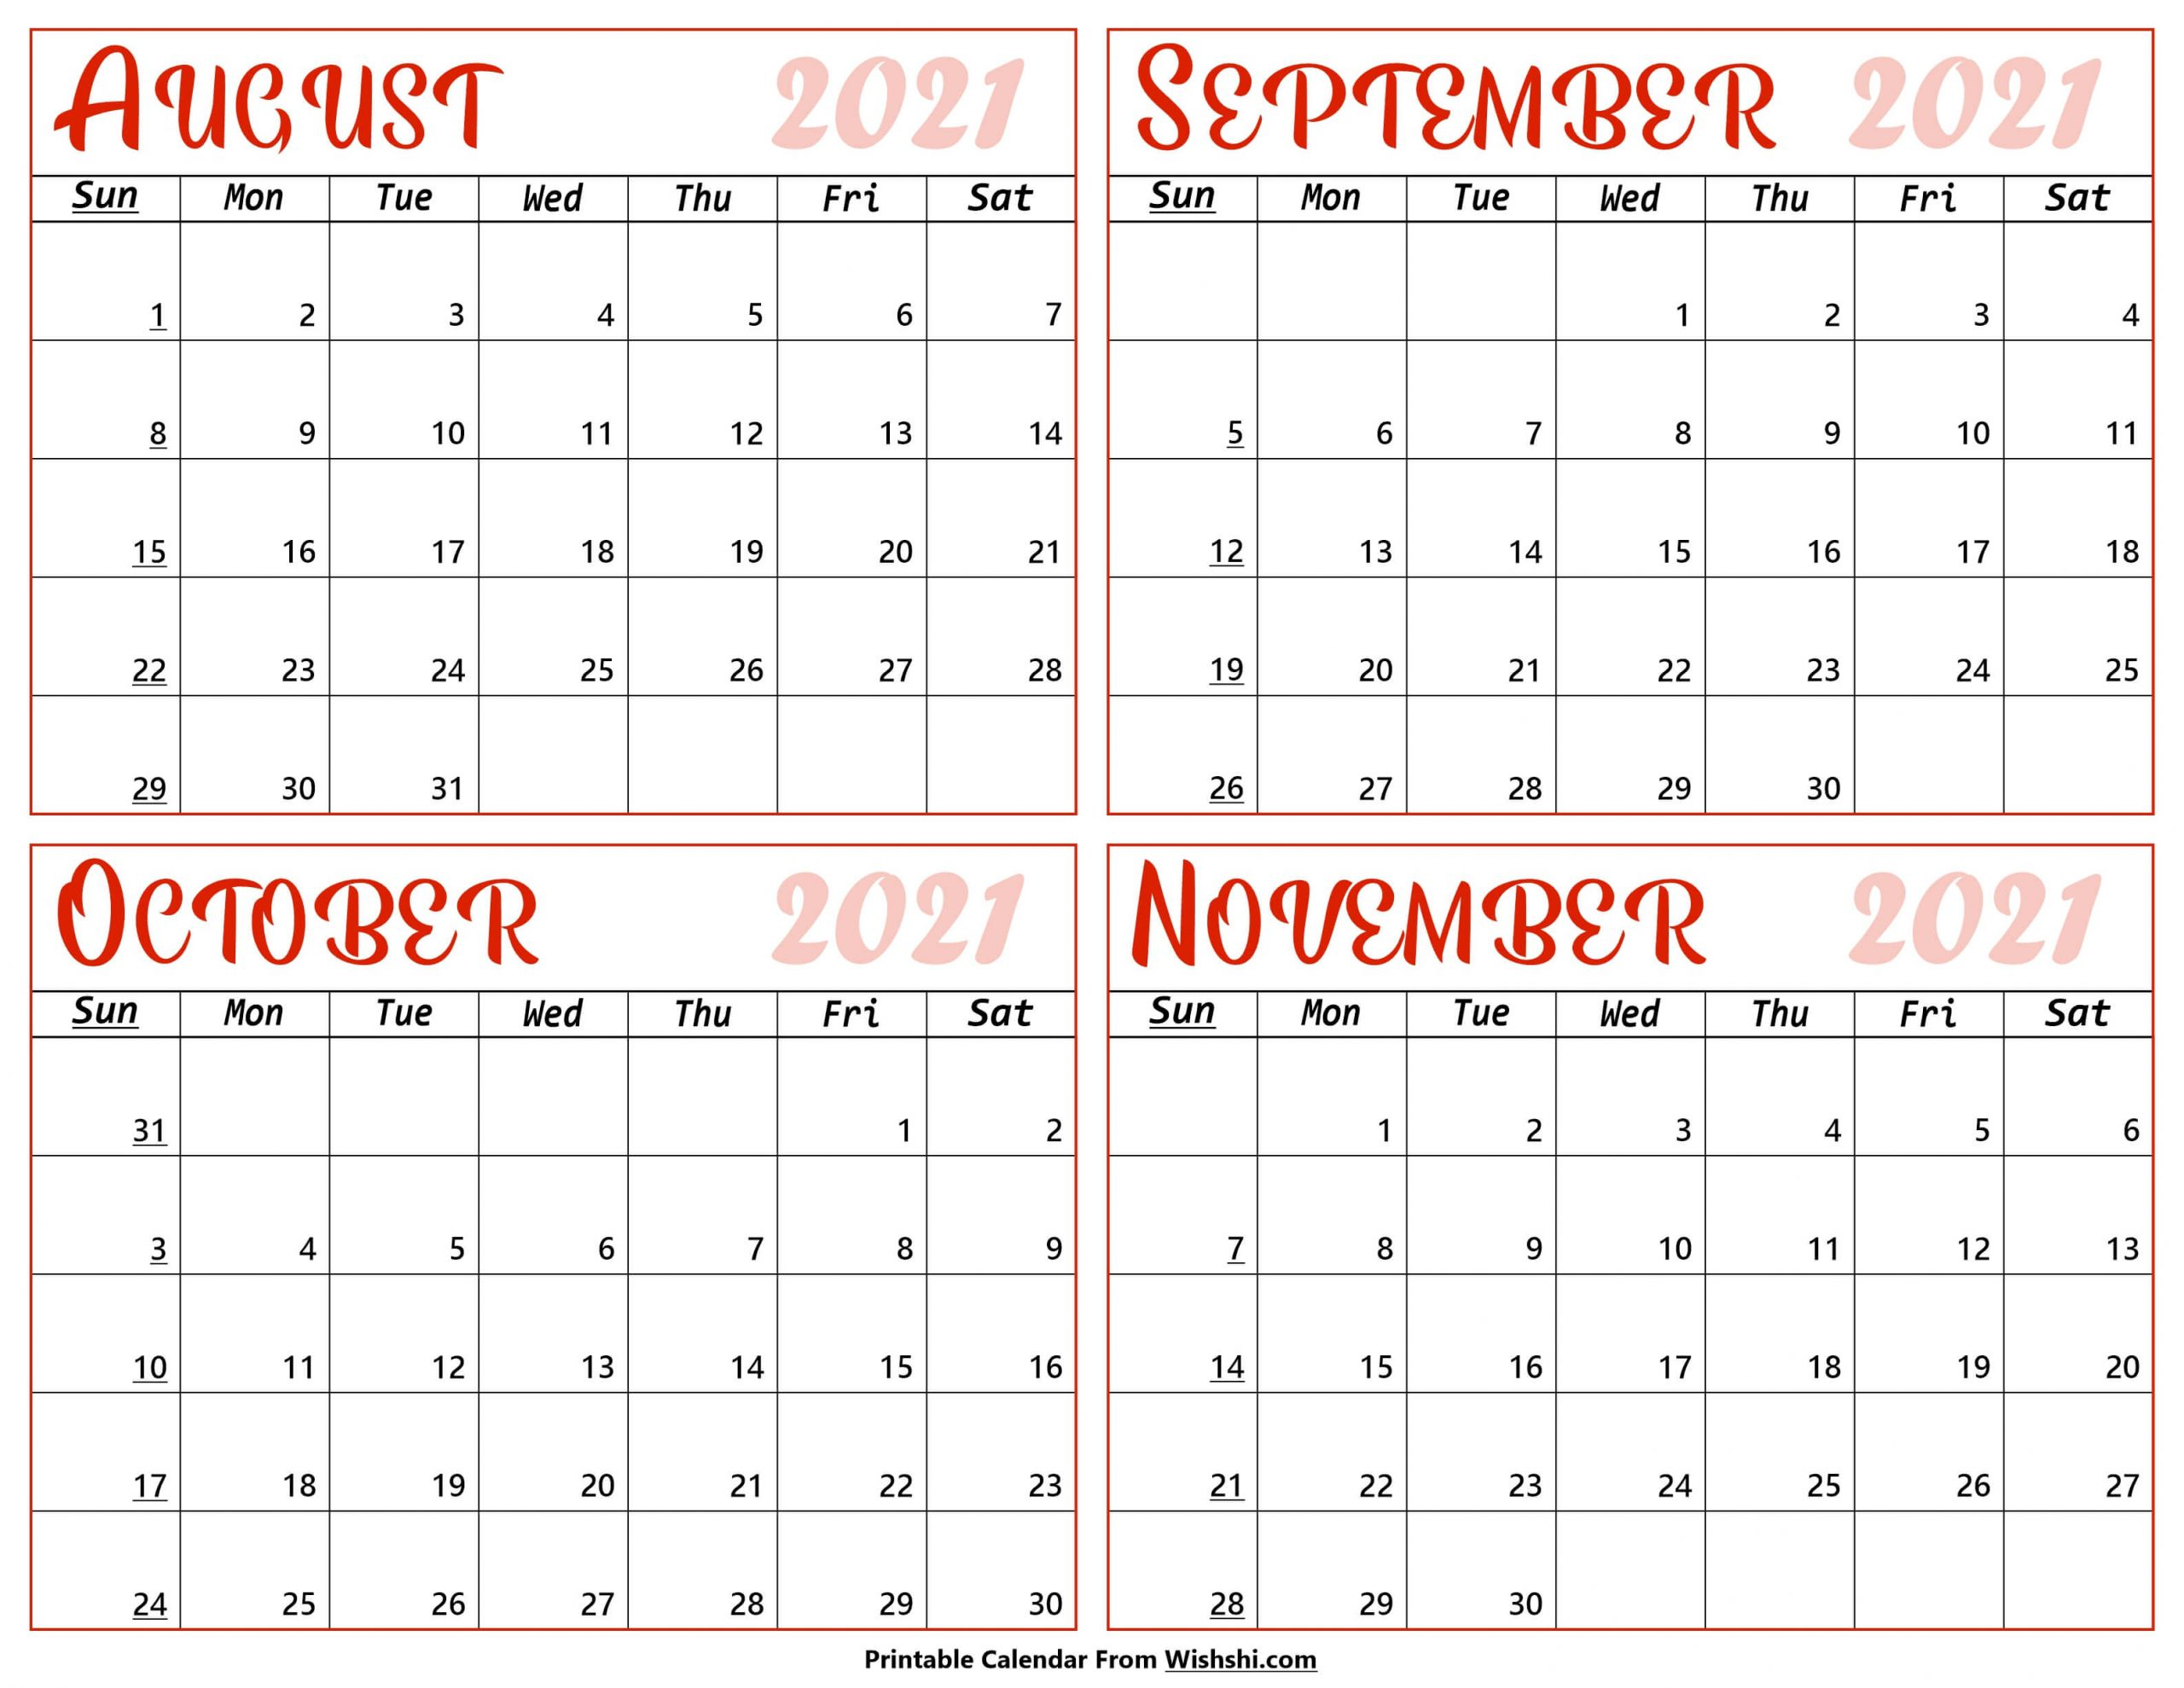 Calendar August to November 2021 scaled